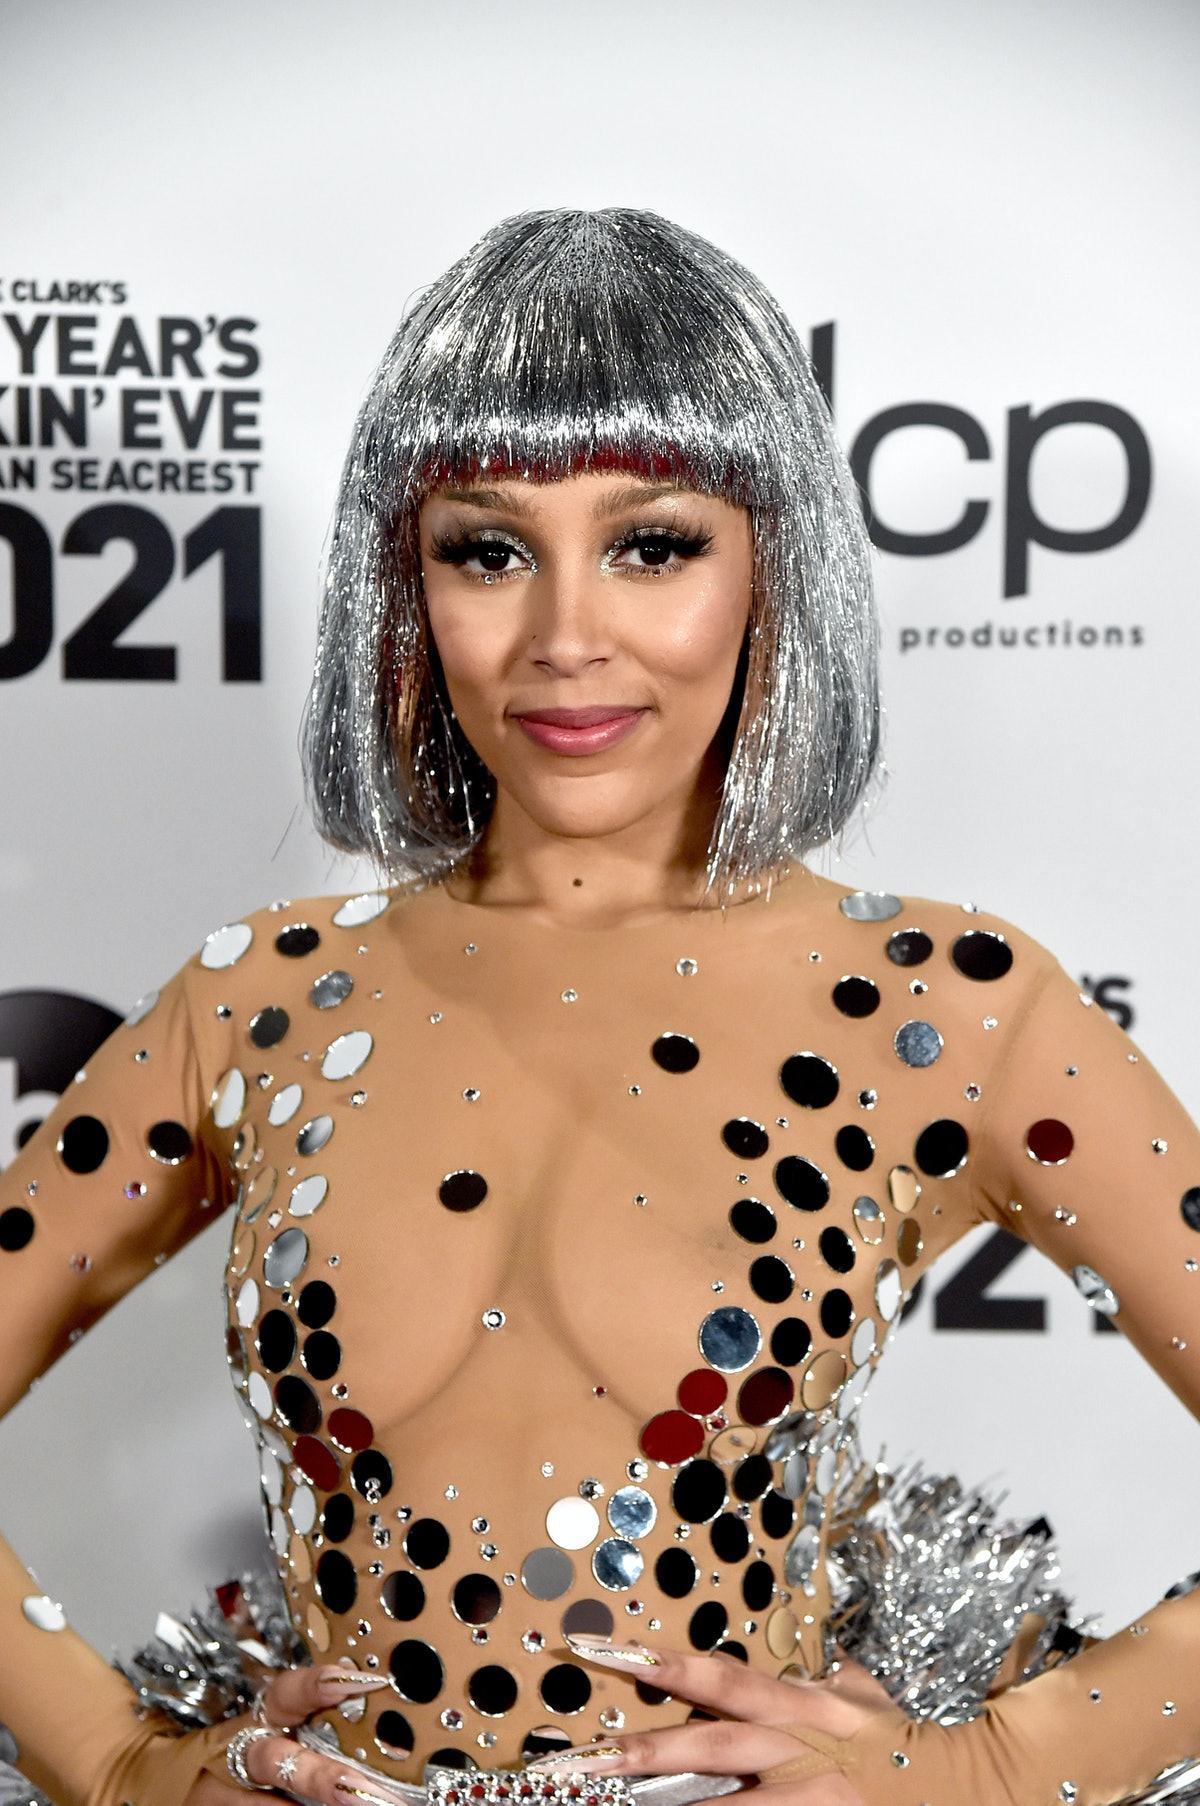 LOS ANGELES, CA – DECEMBER 31st: In this image released on December 31, Doja Cat arrives at Dick Cla...